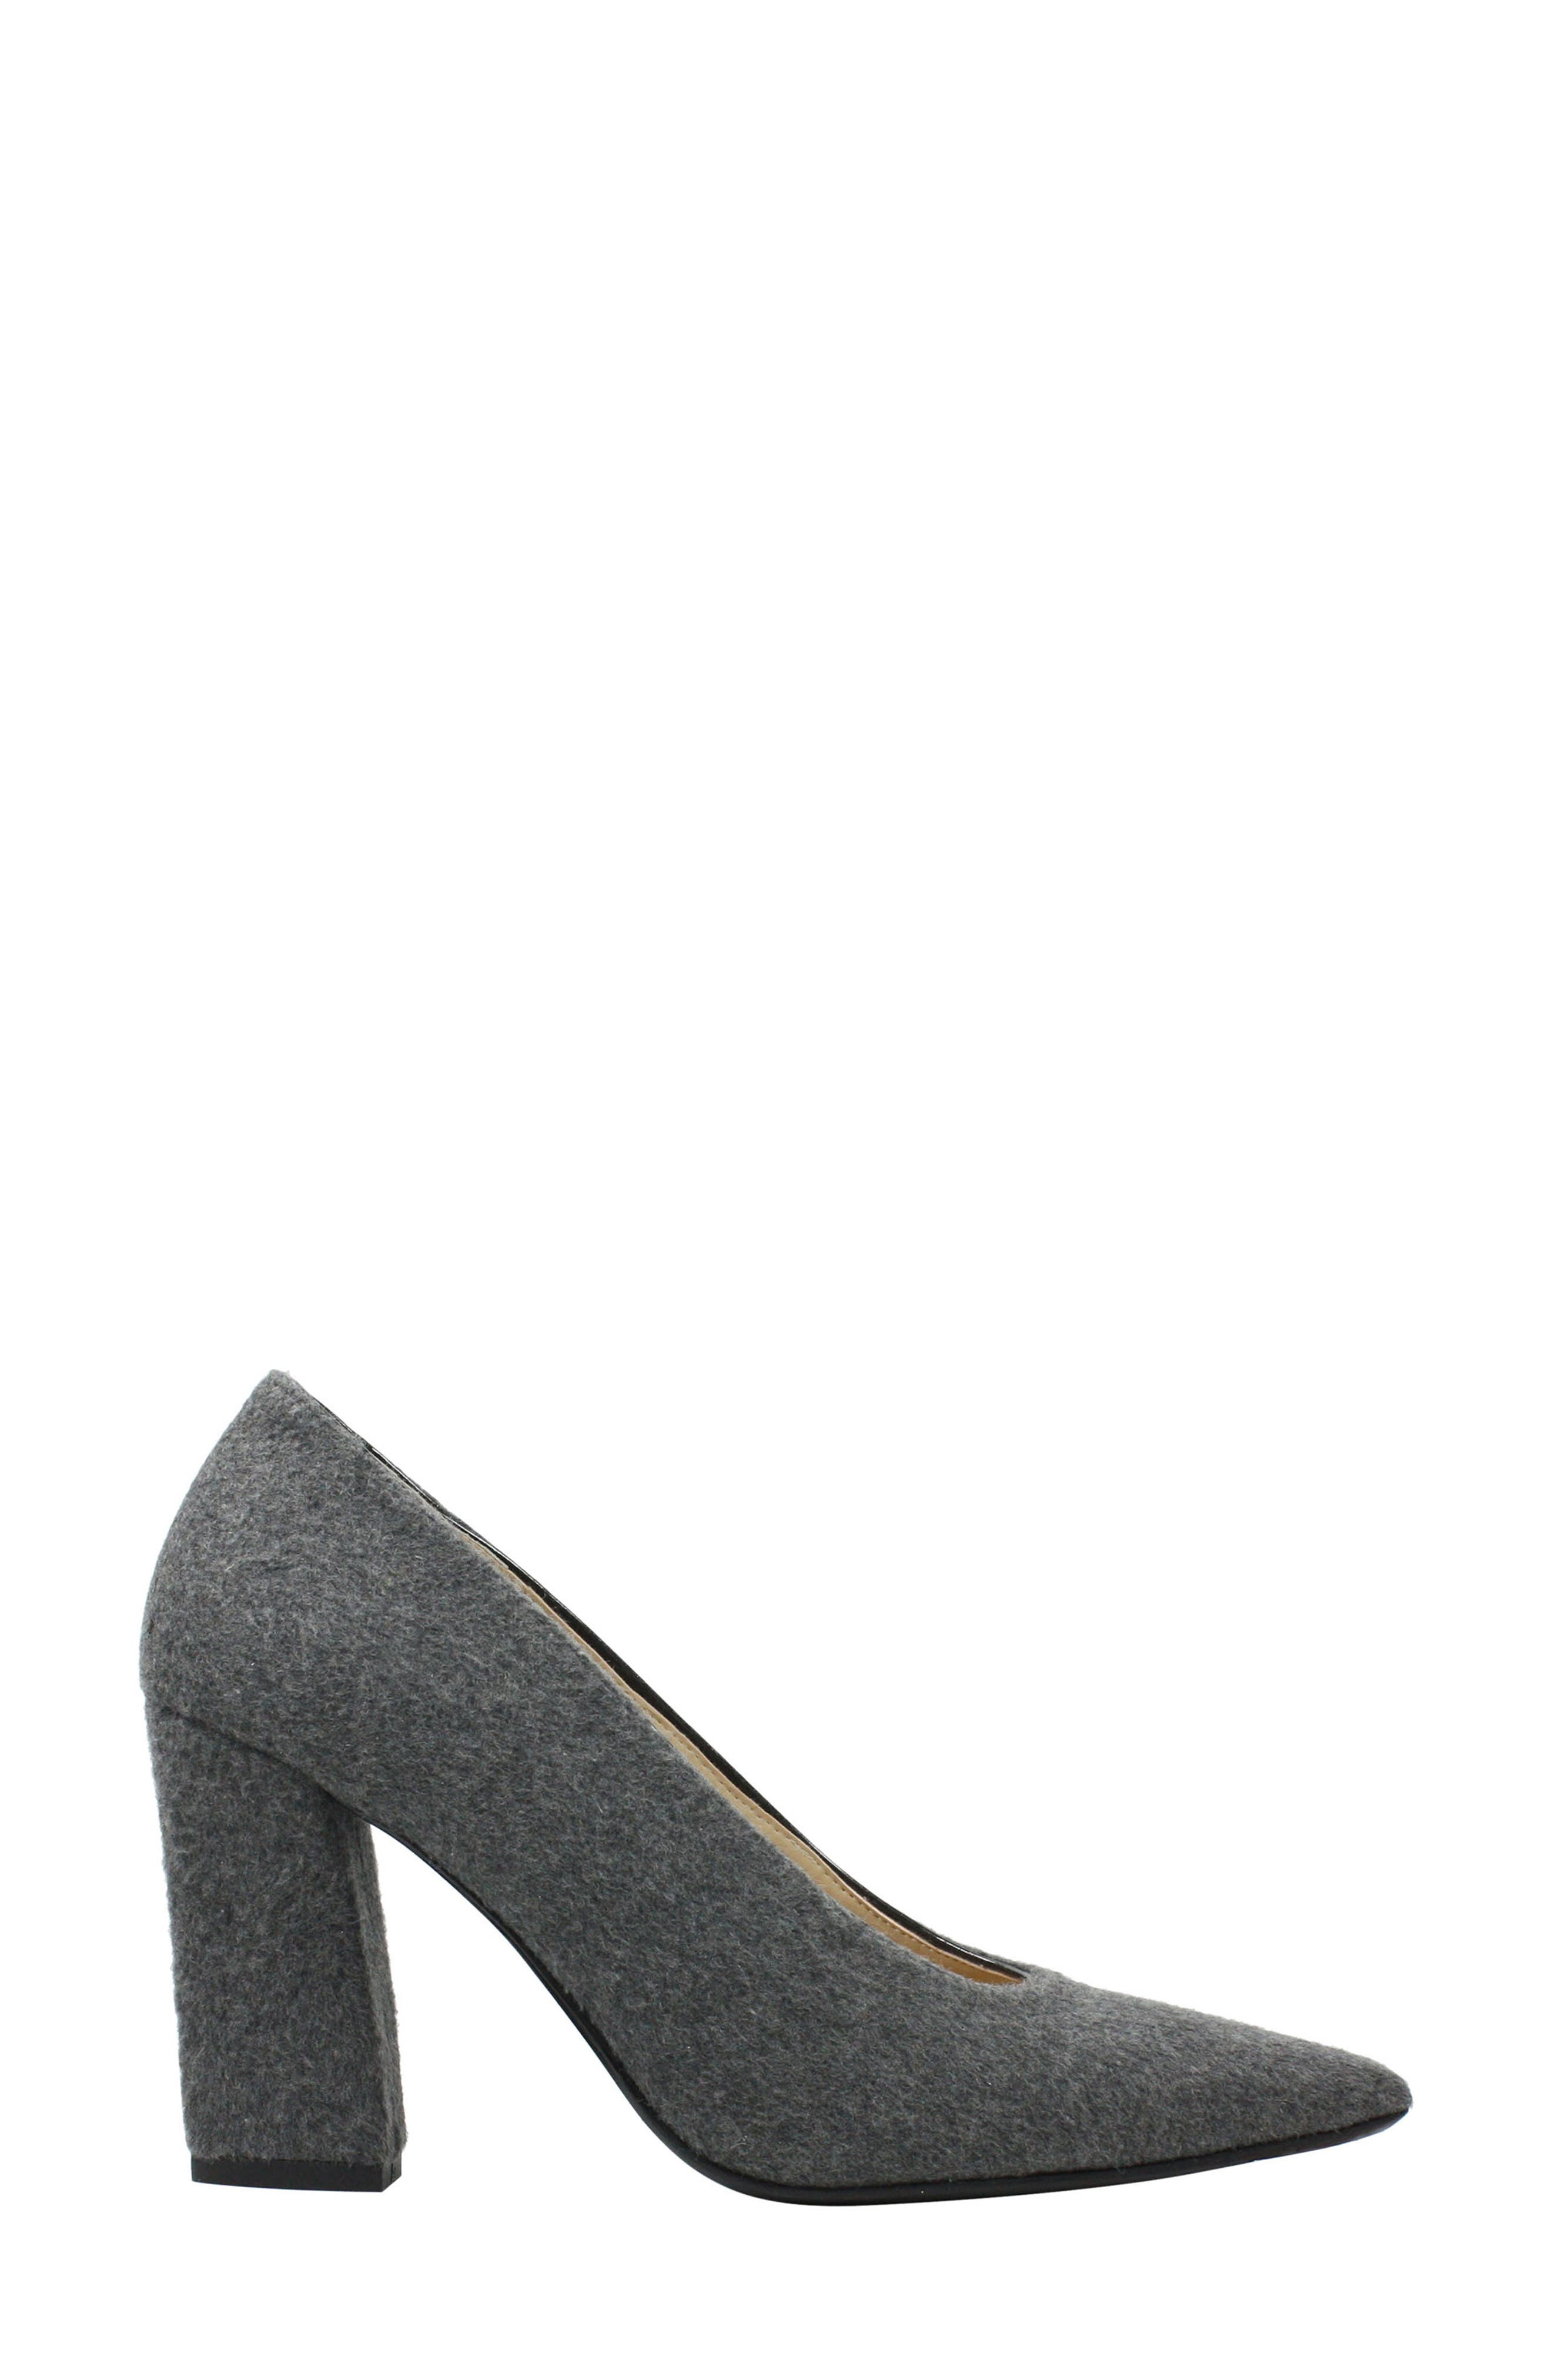 J. RENEÉ, Madisson Pointy Toe Pump, Alternate thumbnail 3, color, GREY FABRIC